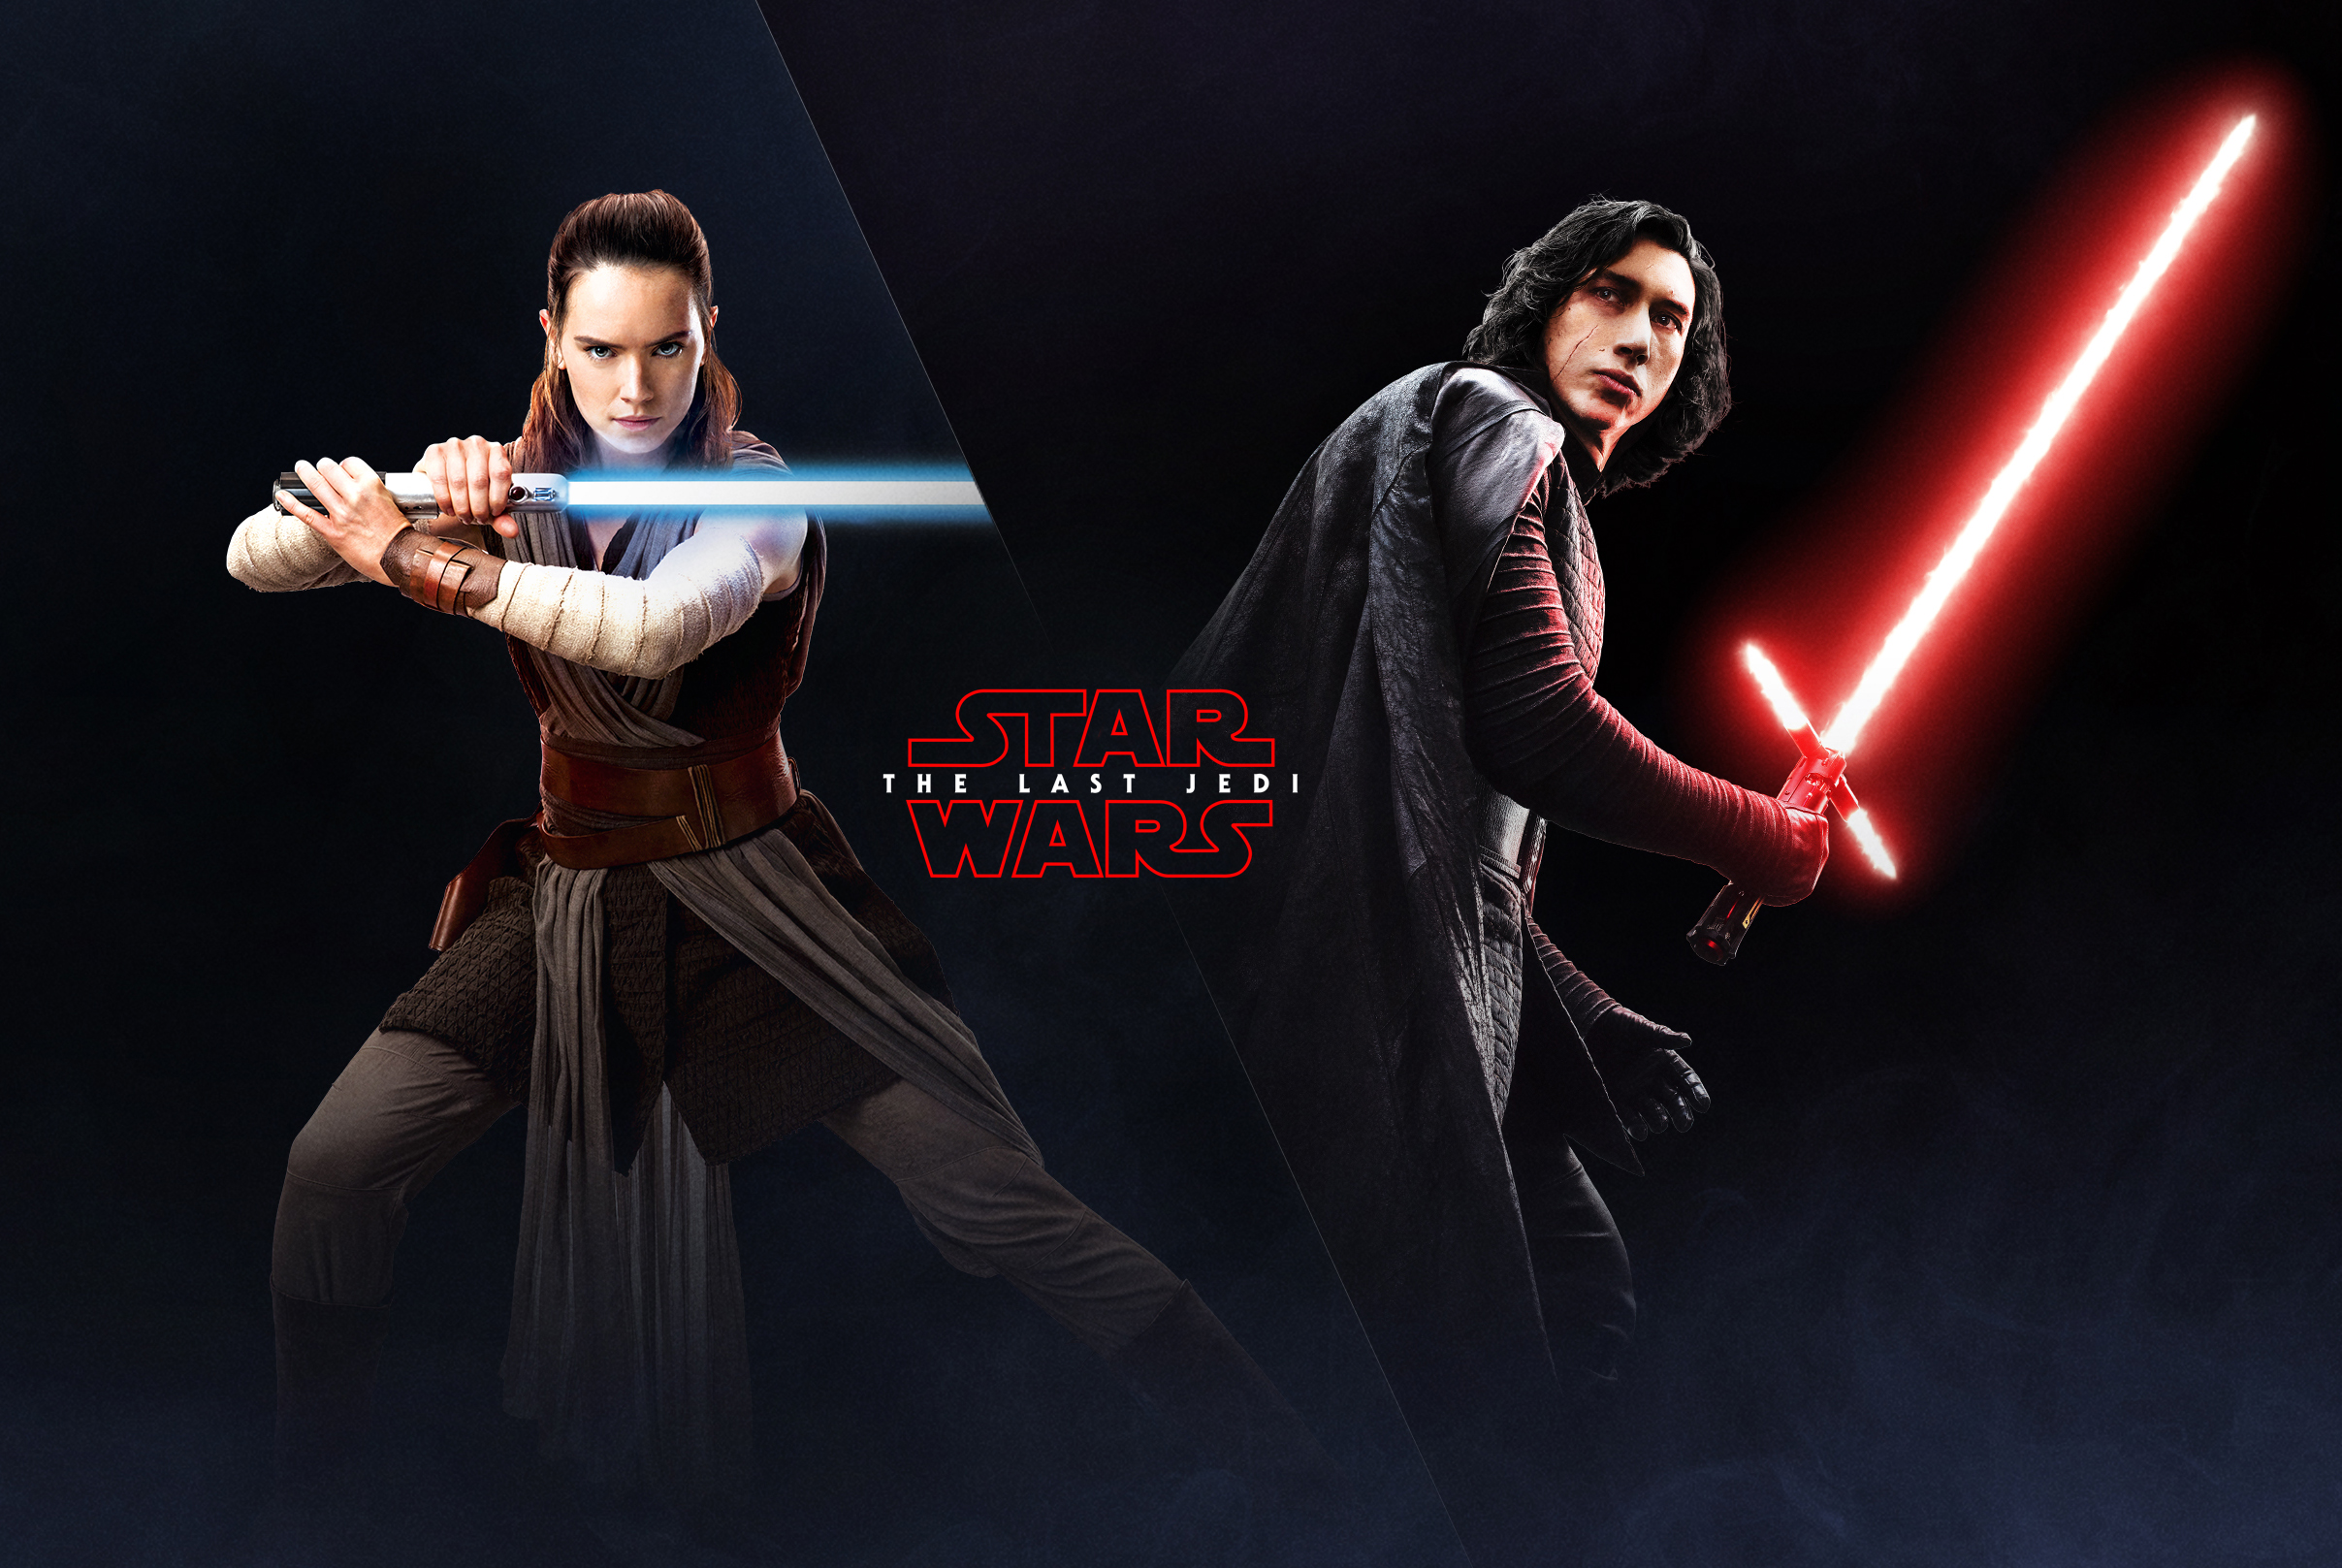 The Last Jedi Wallpaper Rey And Kylo Ren Ea Battlefront Star